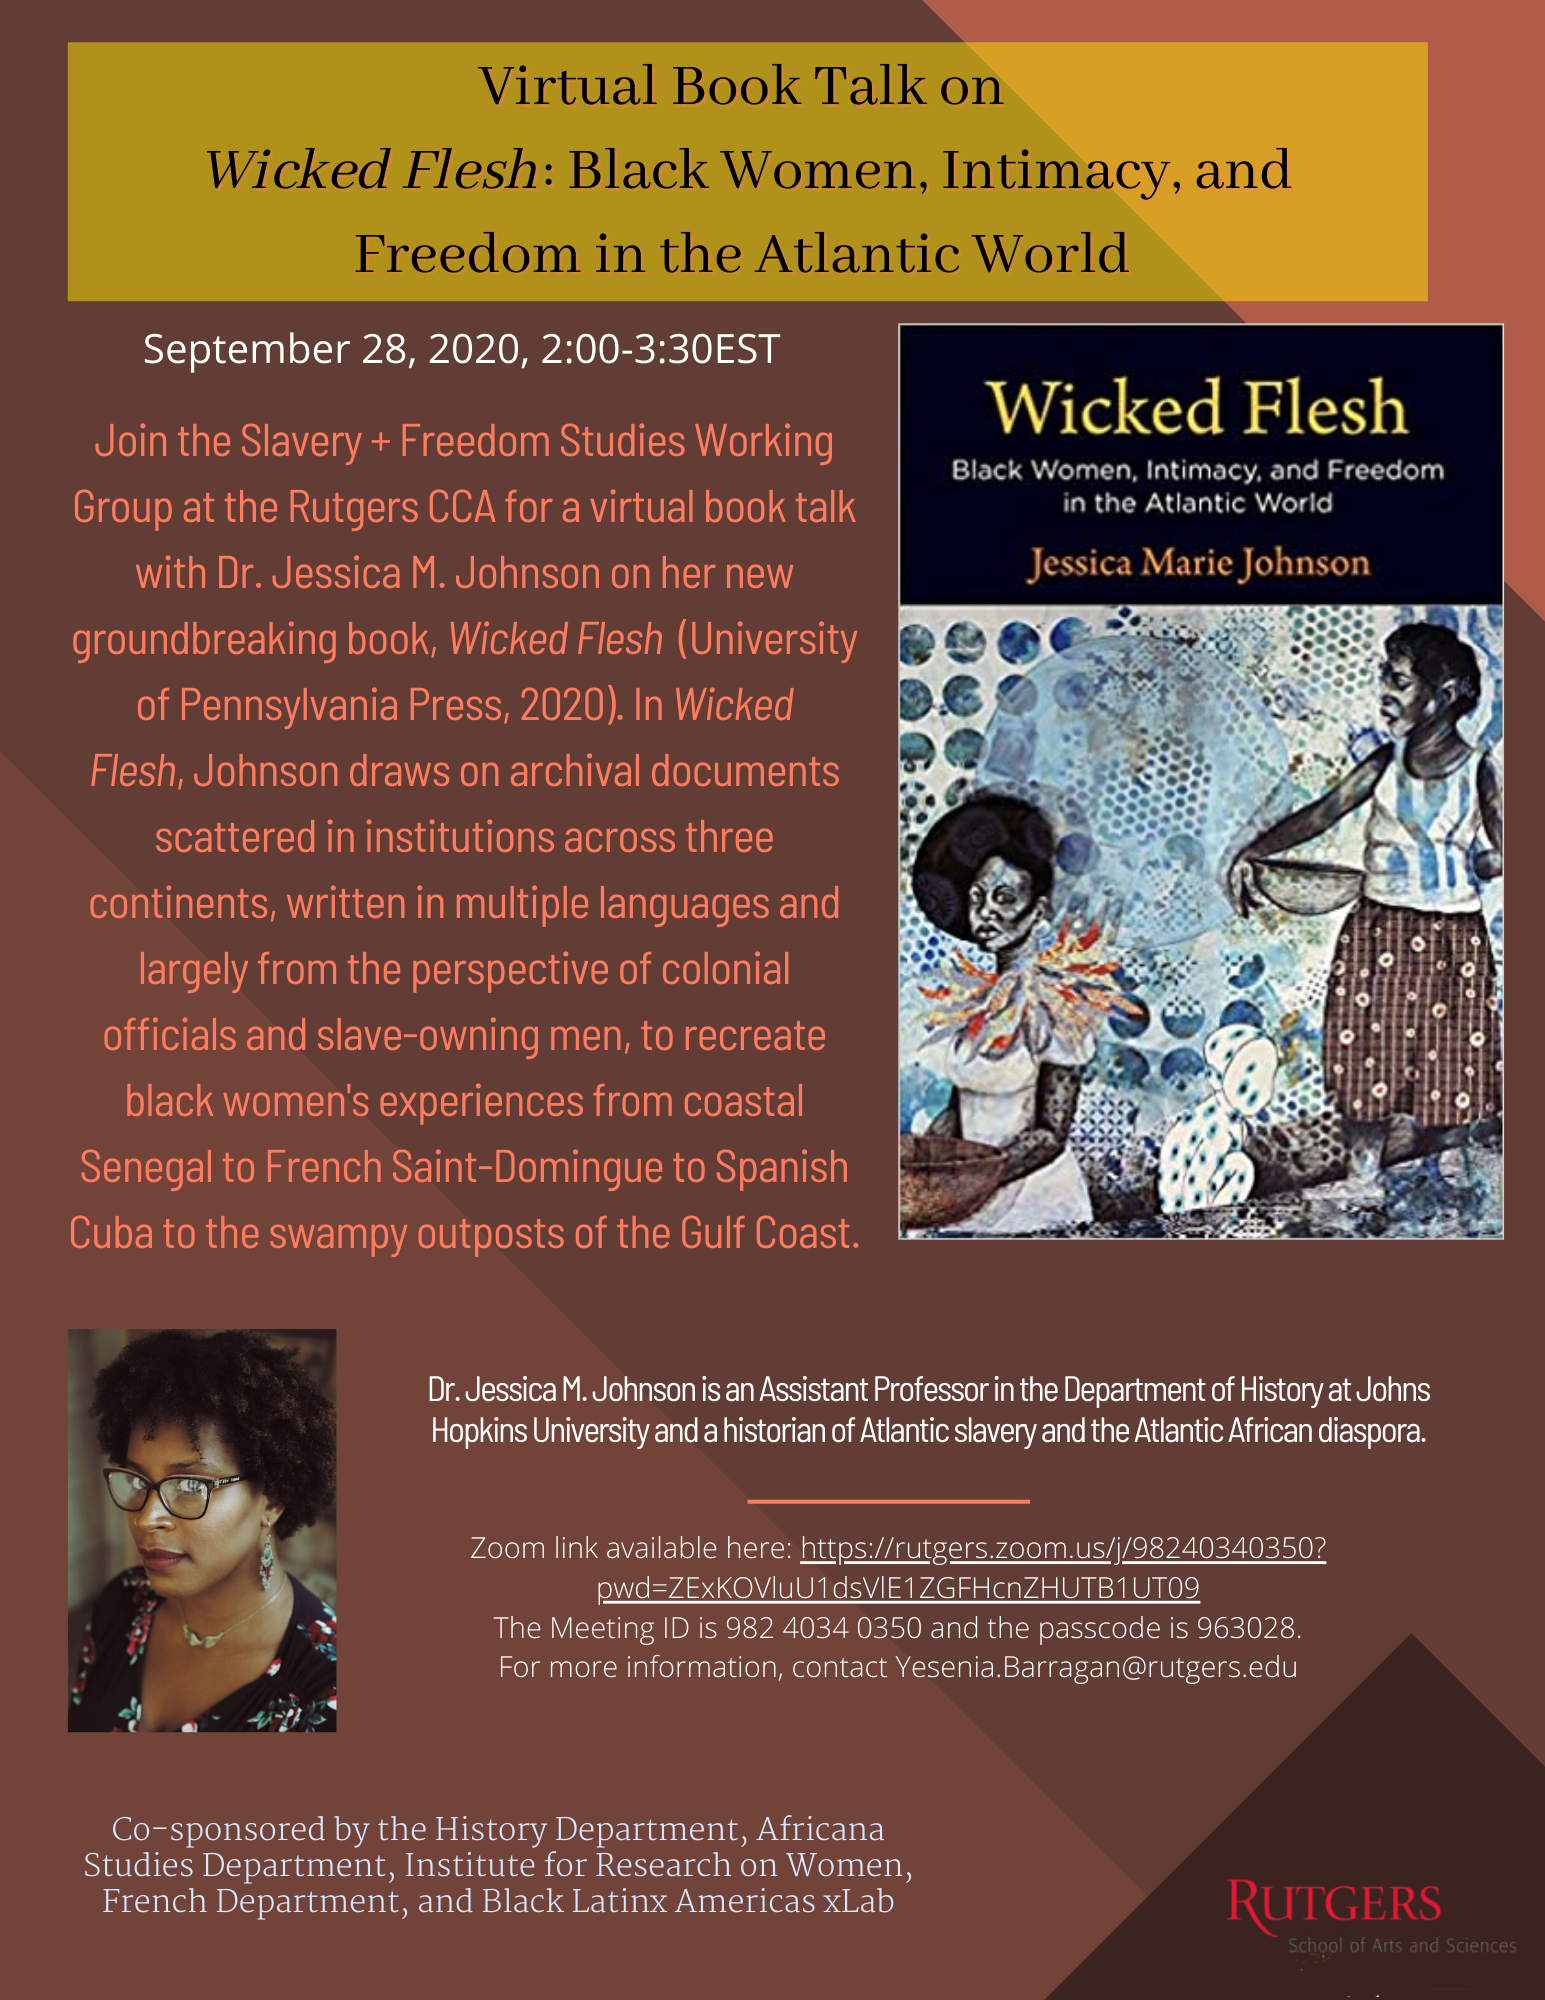 Virtual Book Talk on Wicked Flesh Black Women Intimacy and Freedom in the Atlantic World University of Pennsylvania Press 2020 2